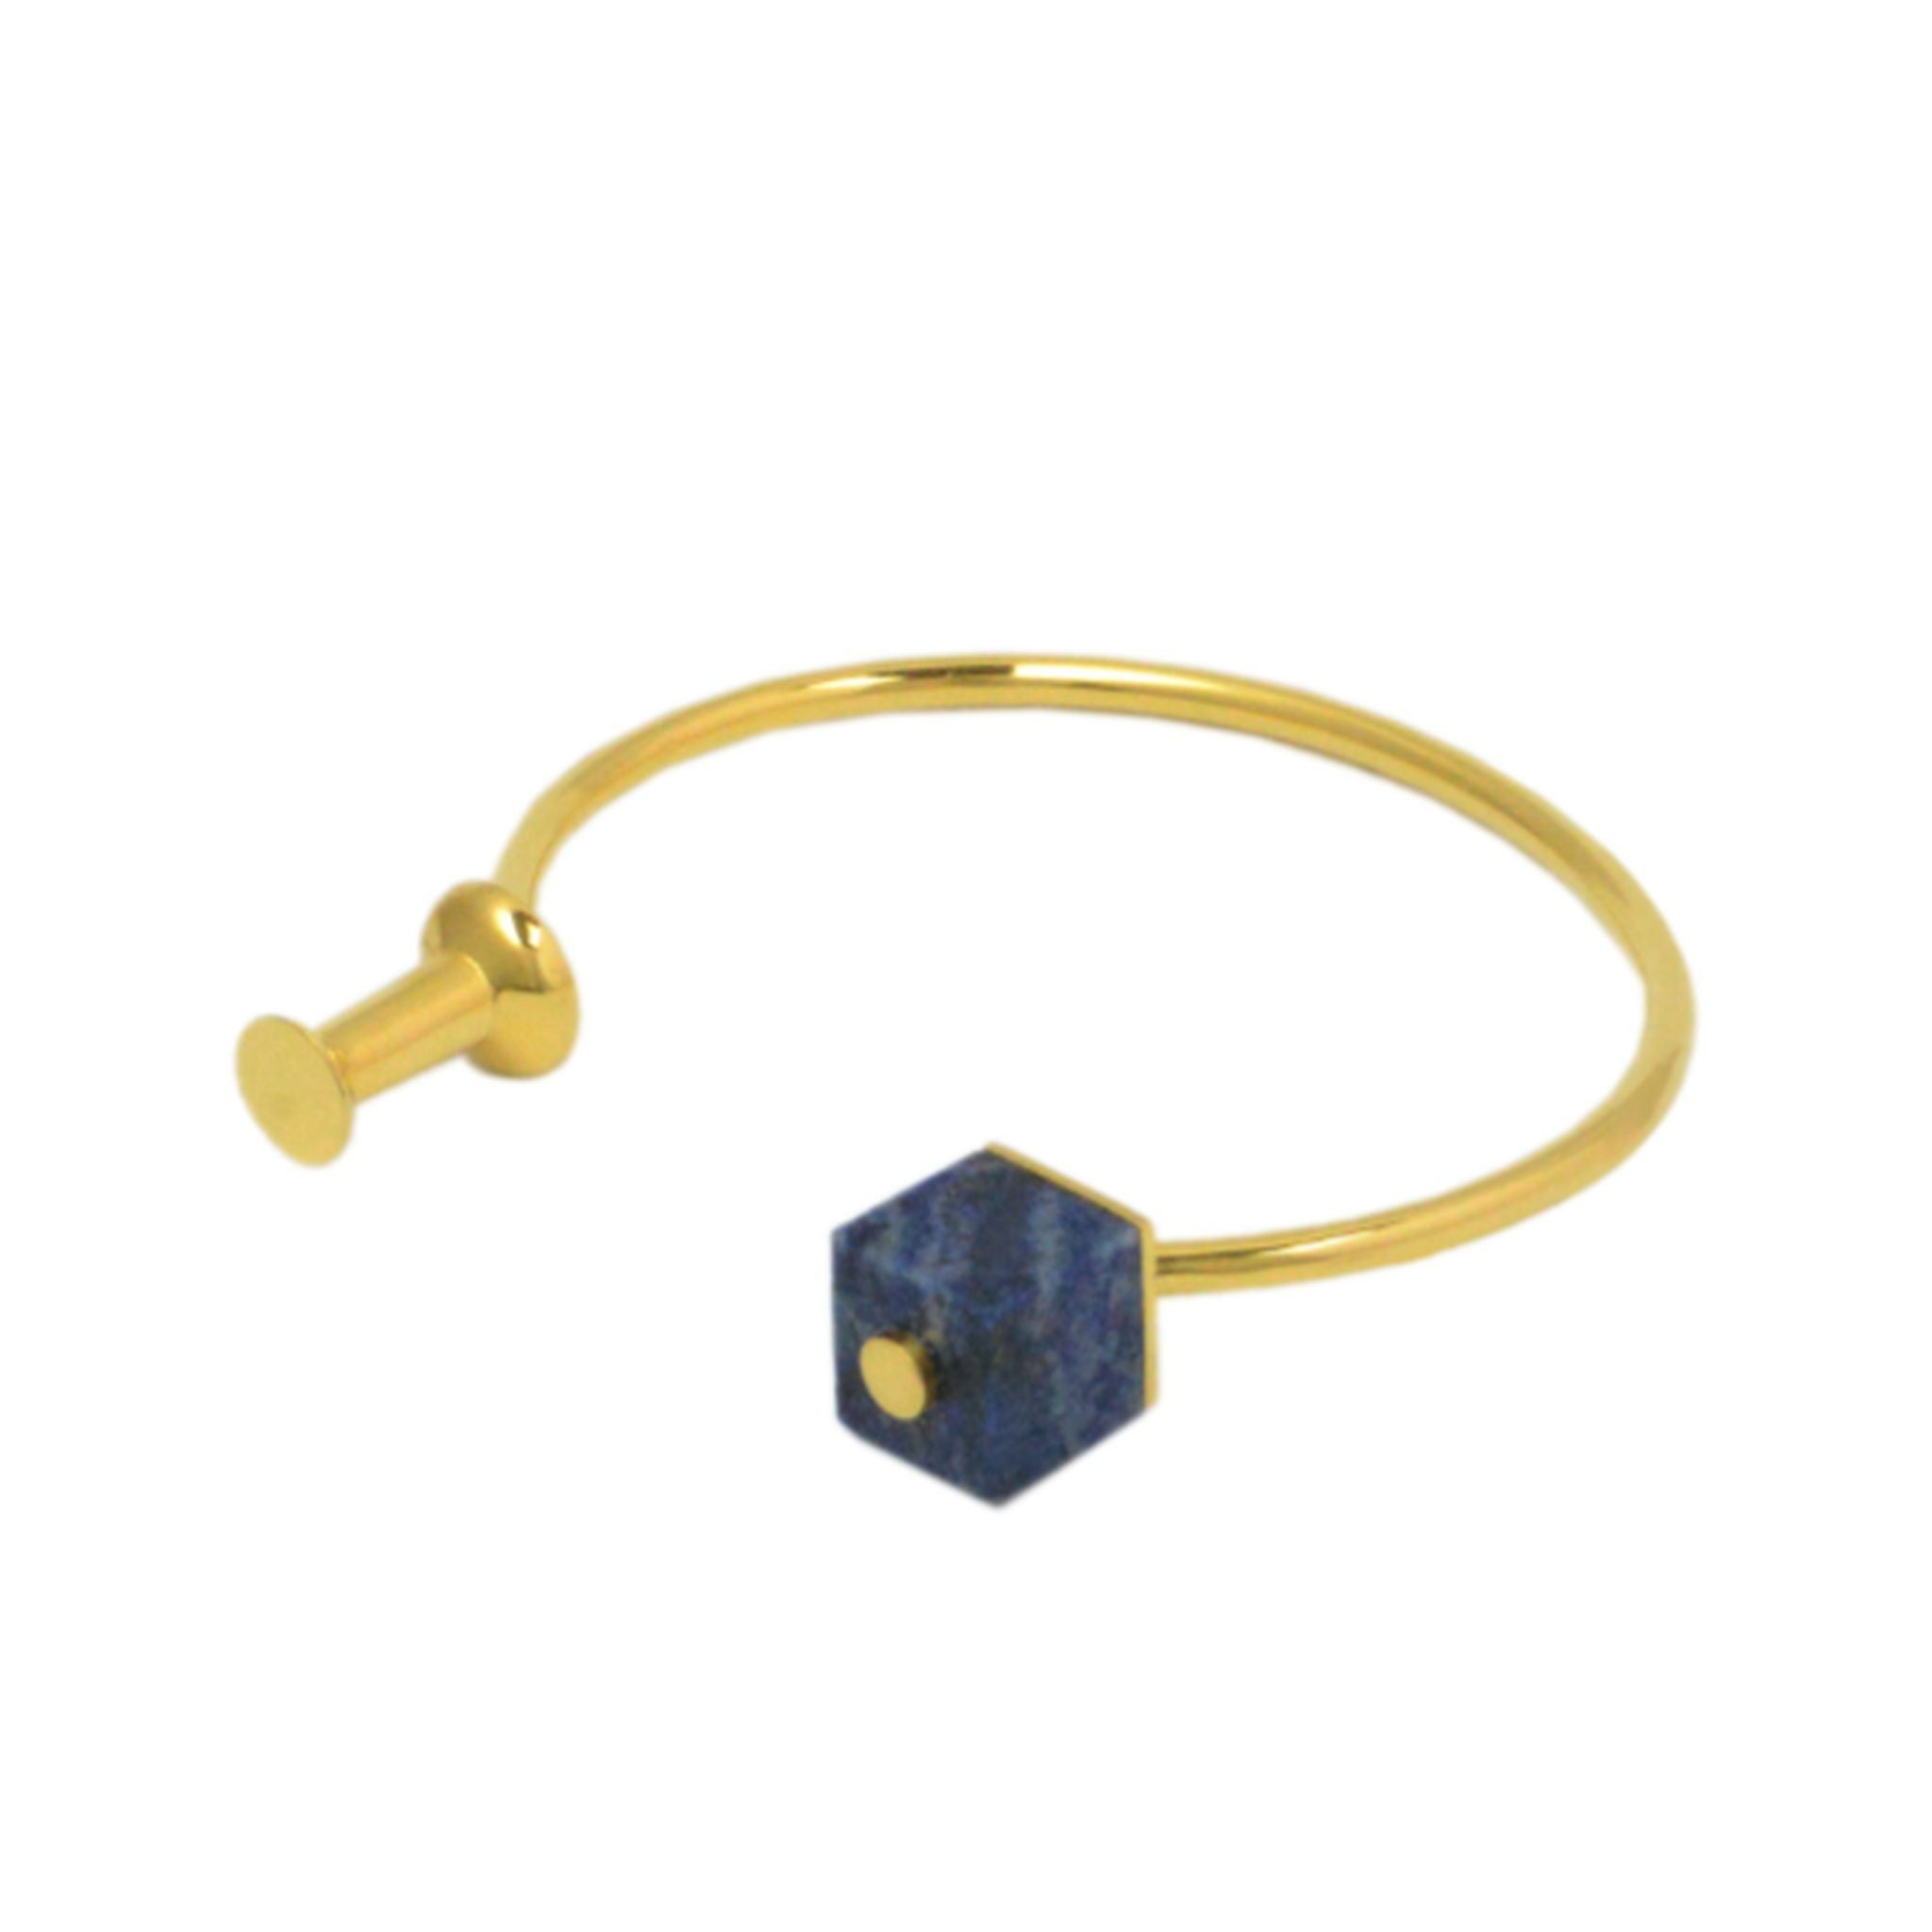 Push Pin and Square Bead Open Top Bangle-Bangles-Everard & Wang